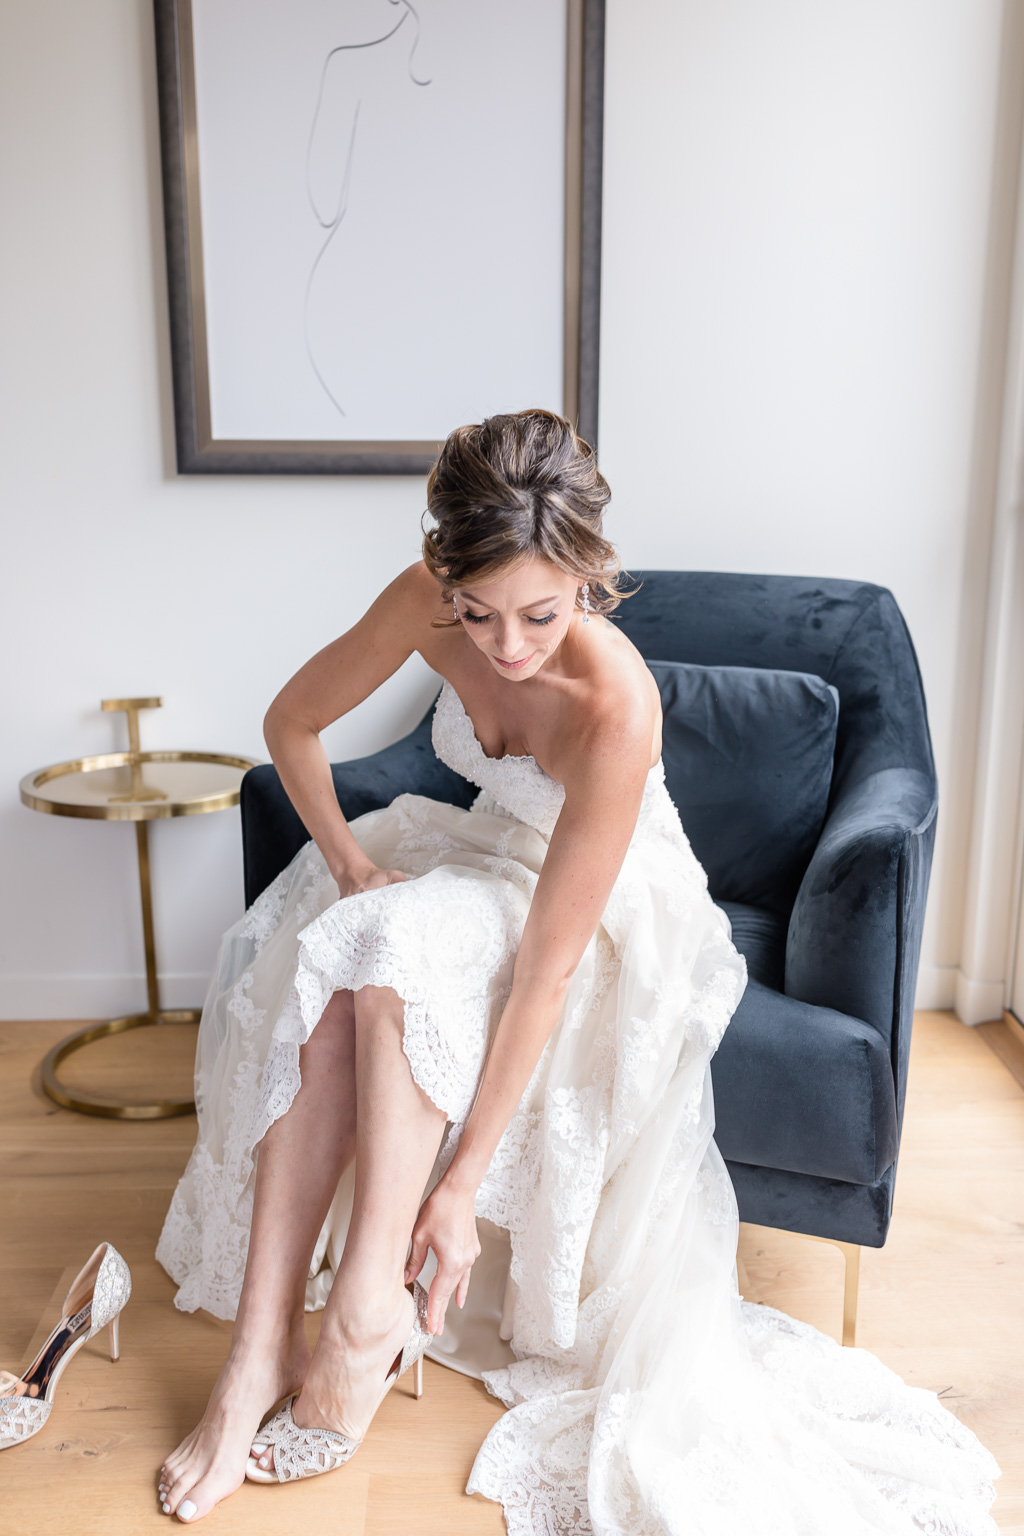 timeless elegant bride's getting ready moment - San Francisco wedding photographer